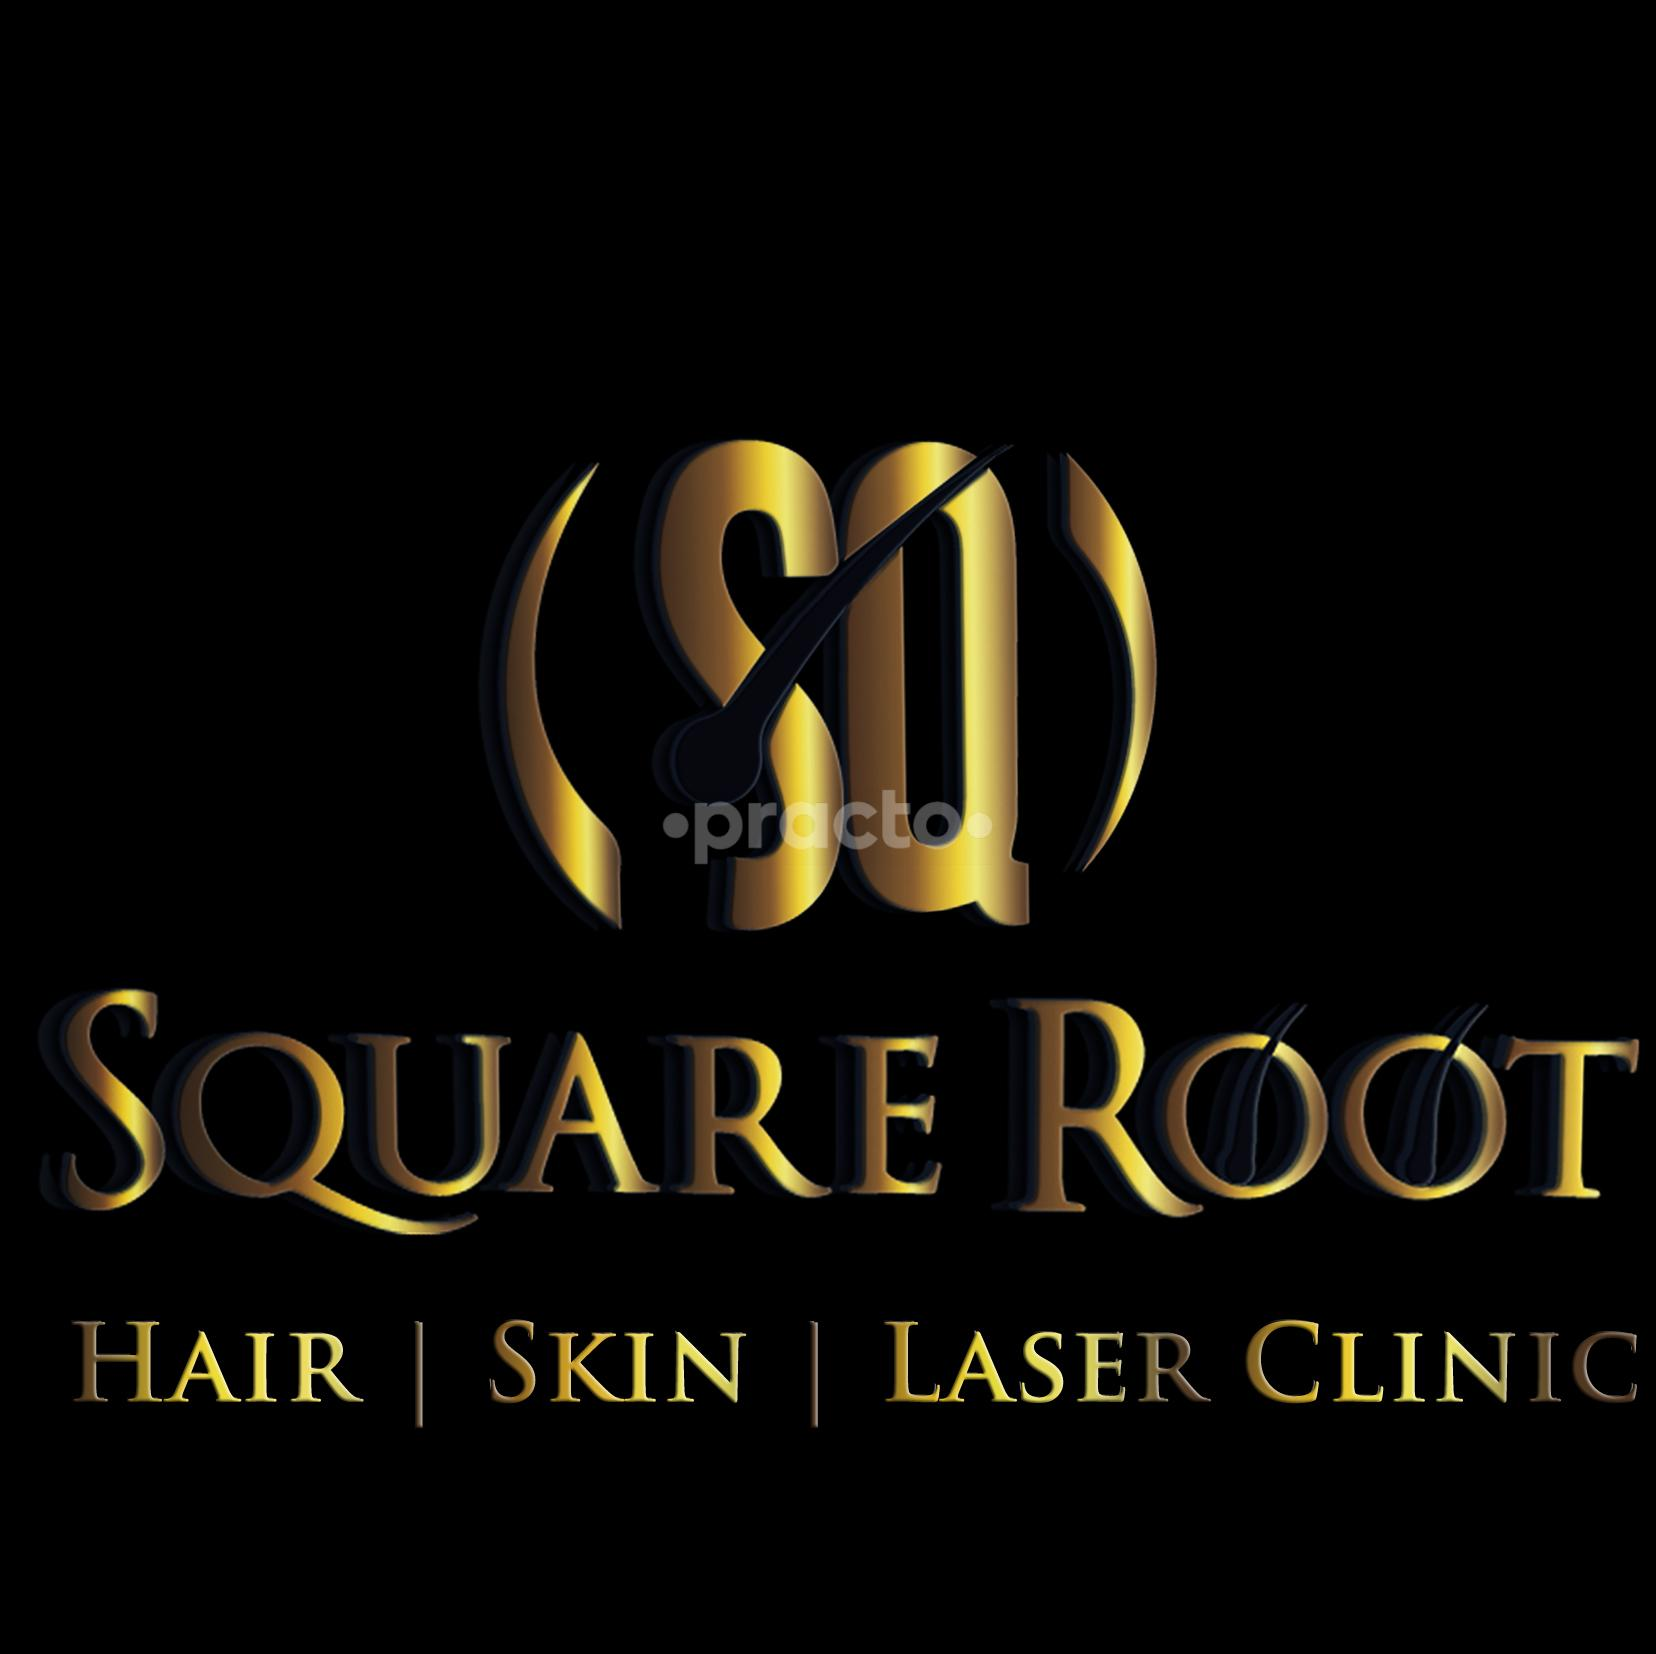 Square Root - Hair | Skin | Laser Clinic